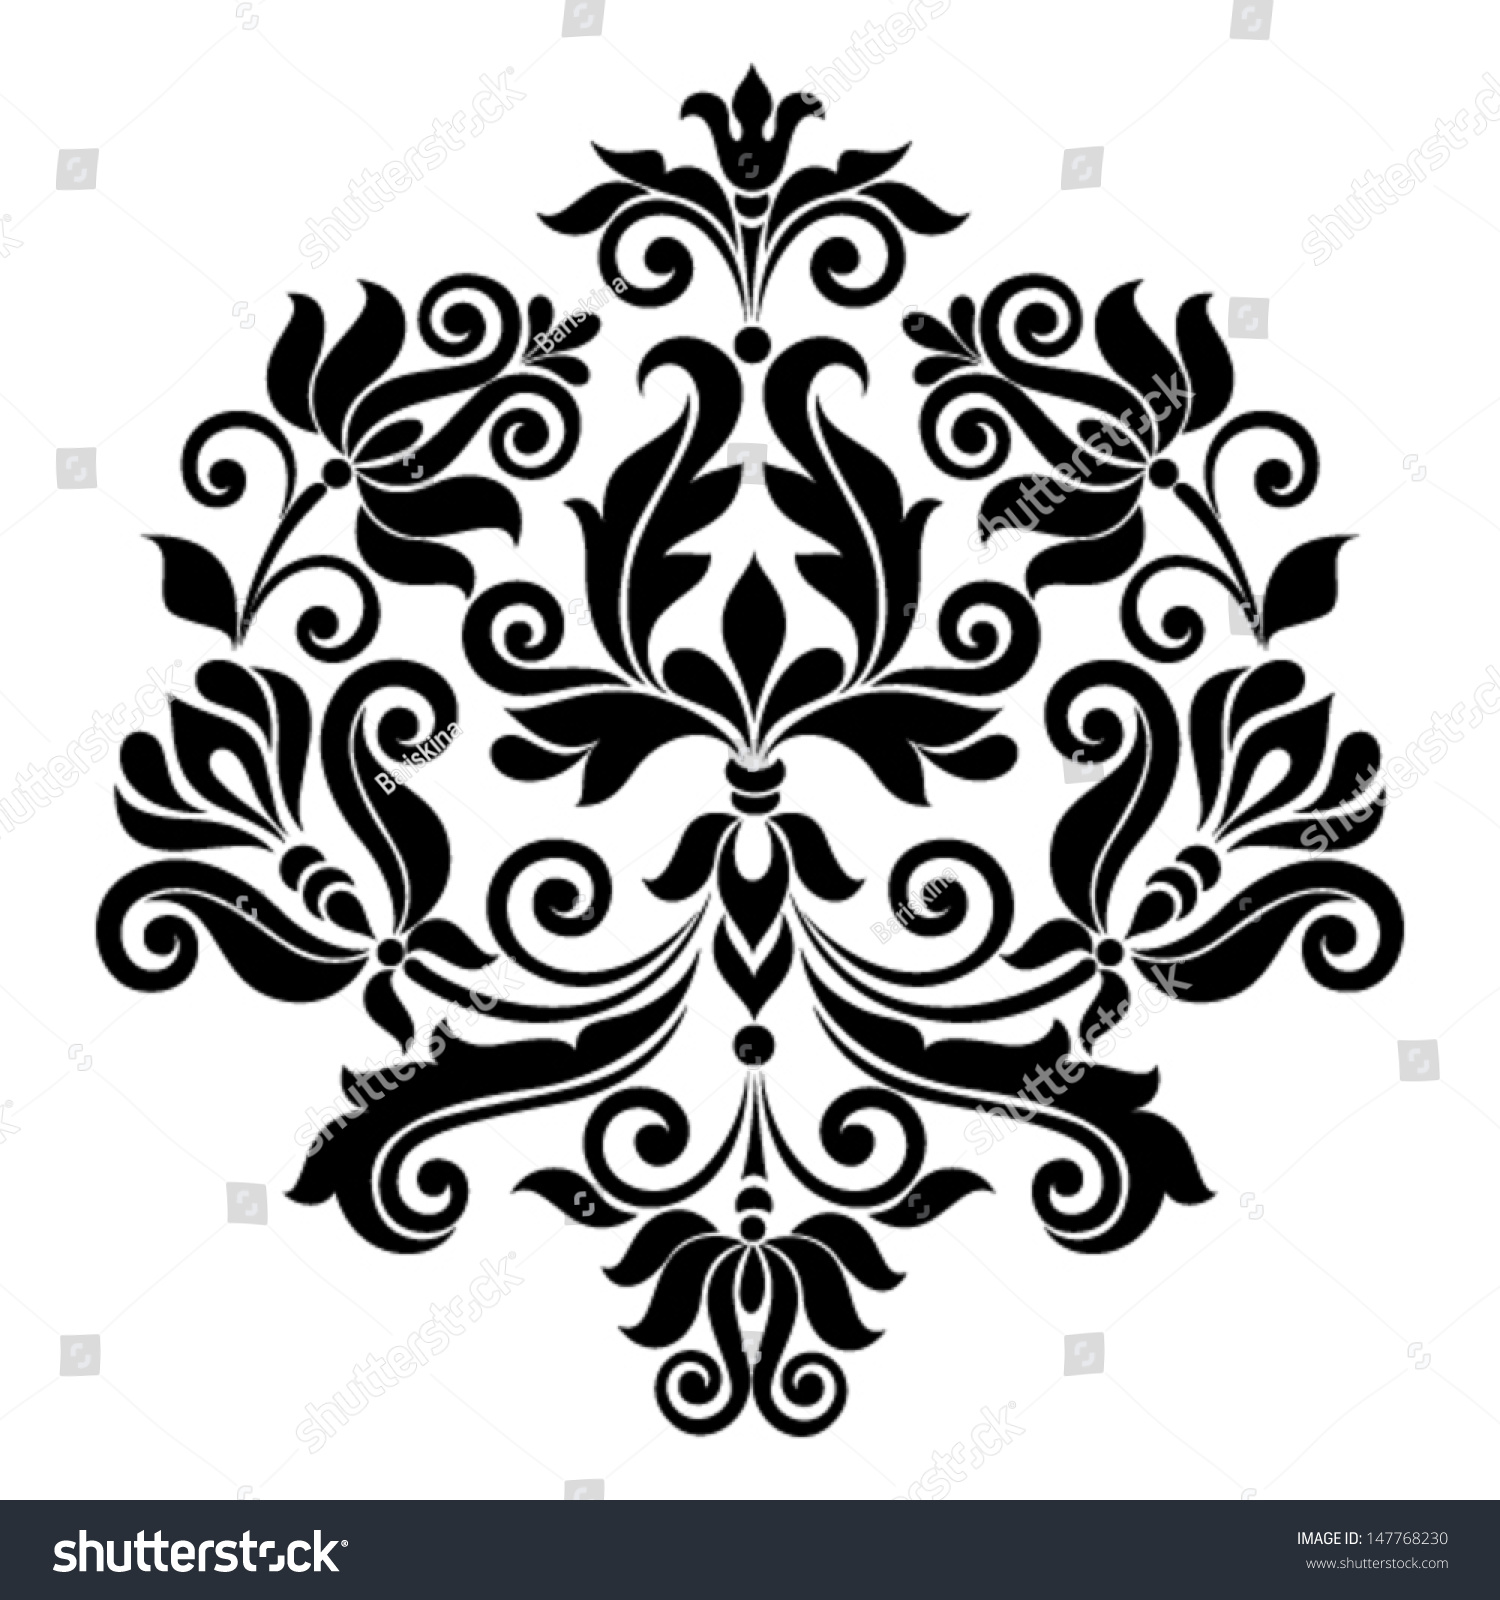 Ornamental Vector Images (over 1 million)